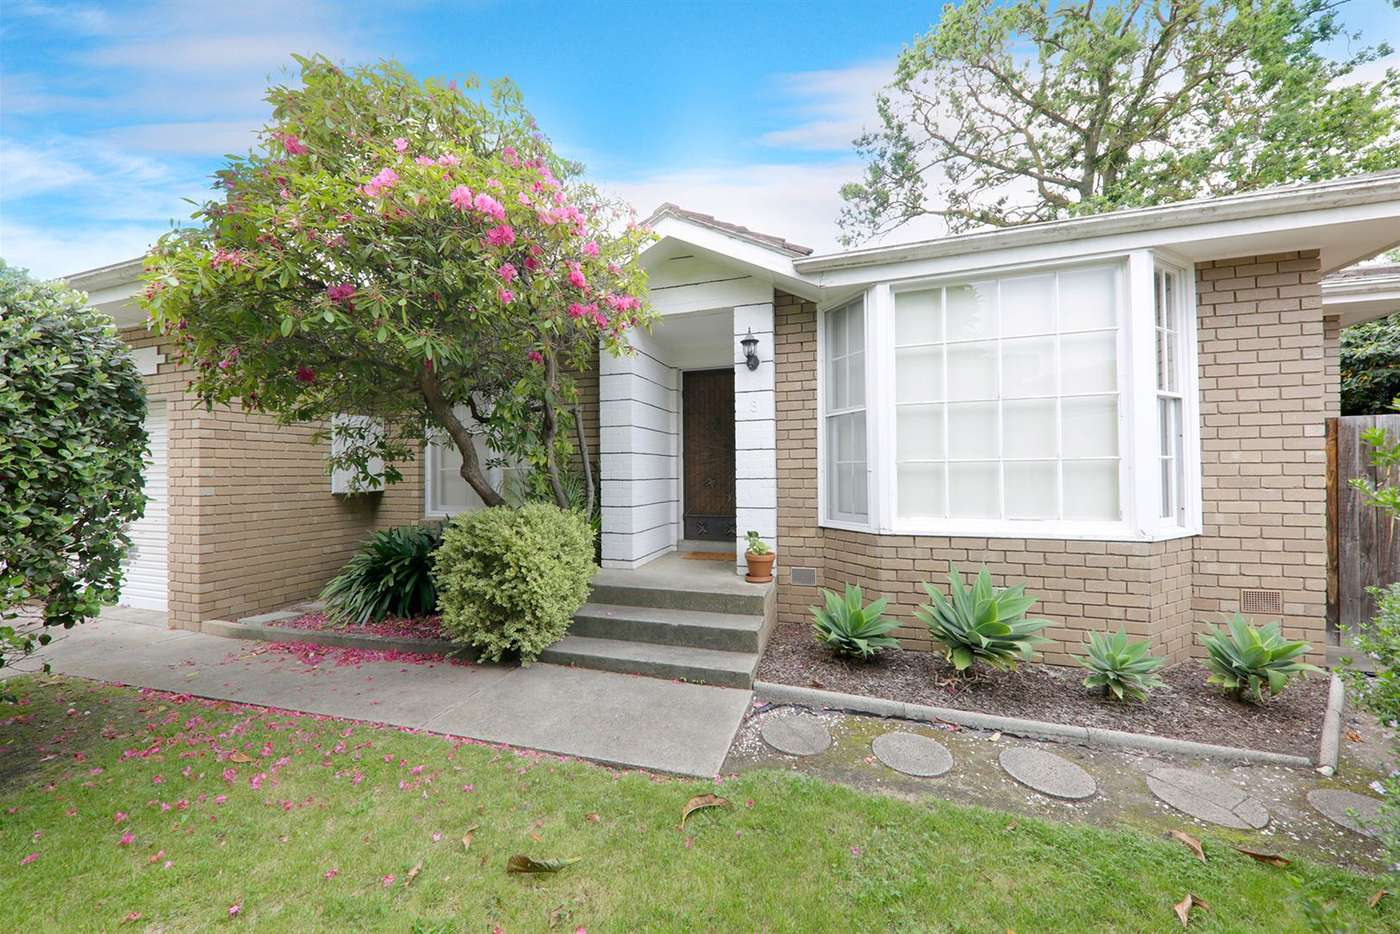 Main view of Homely unit listing, 8/12 Mummery Street, Mount Waverley VIC 3149